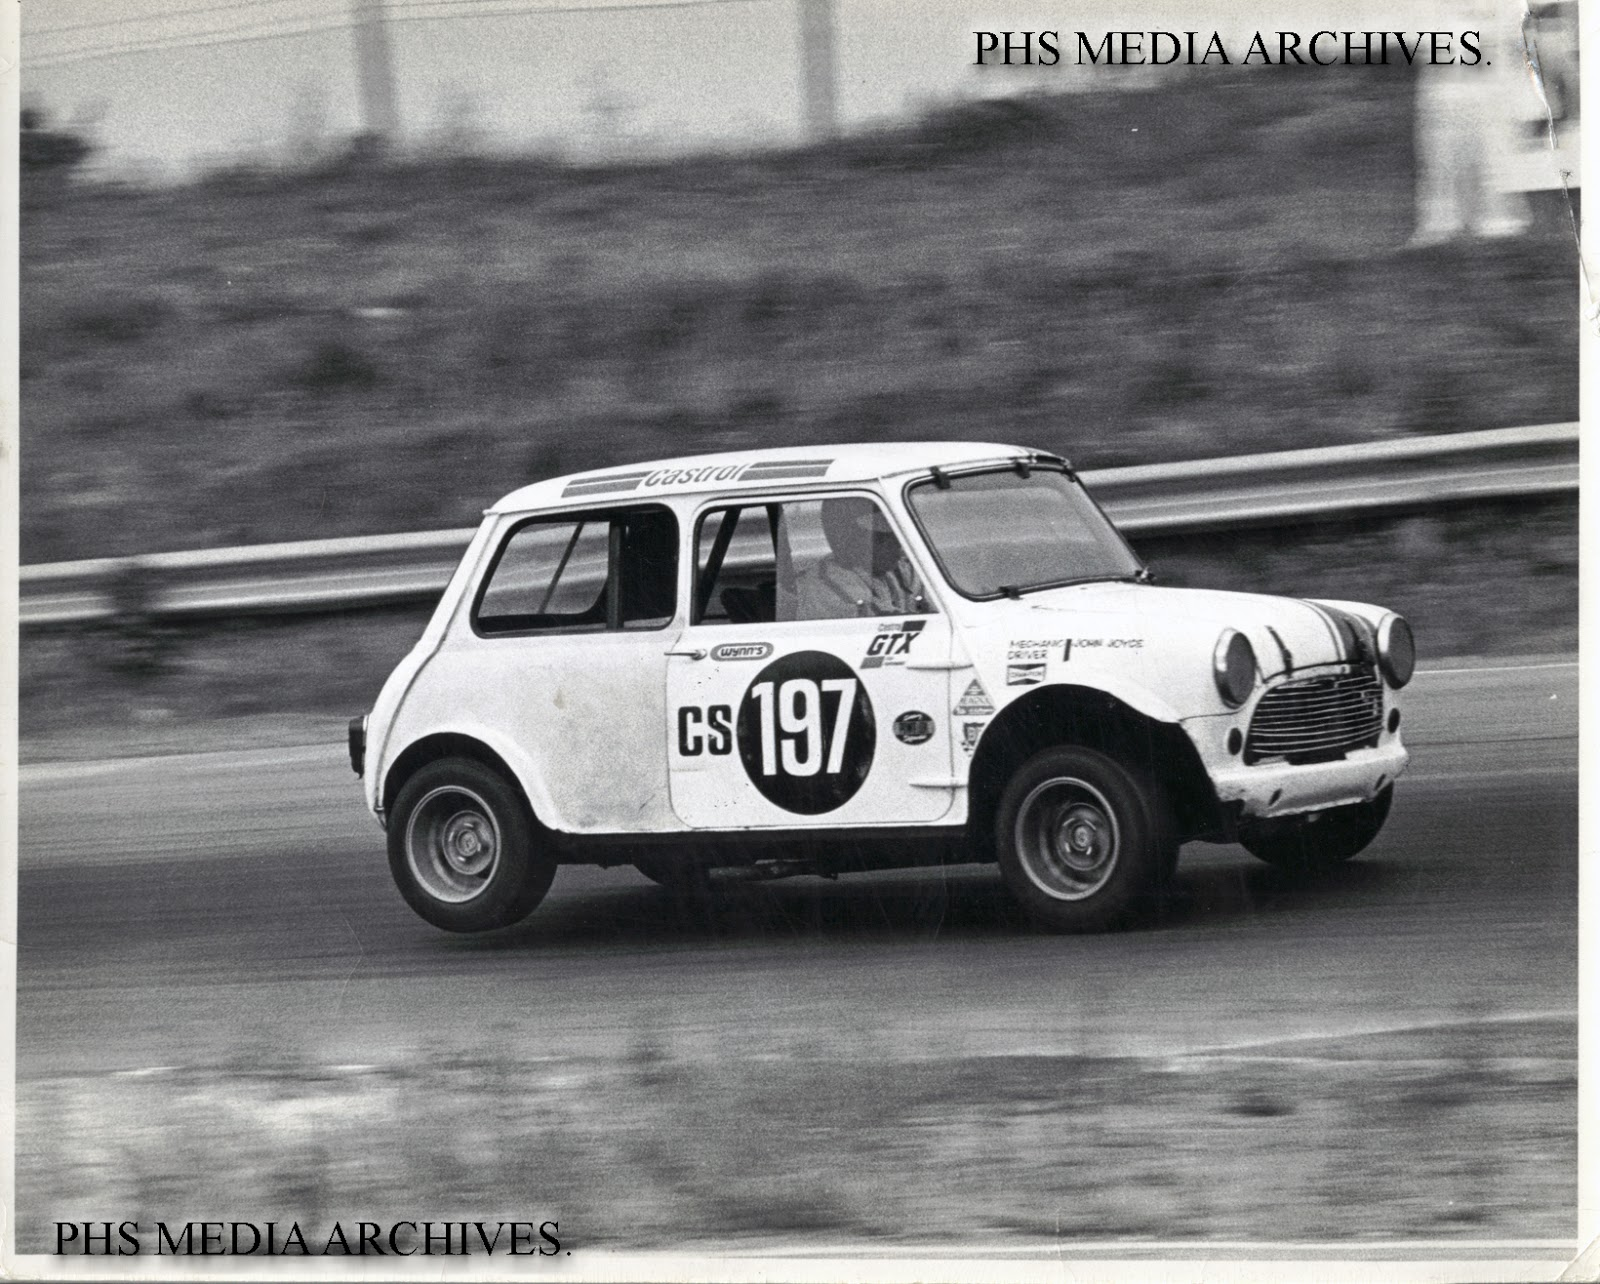 Racing Mystery: Vintage Mini Cooper CS197 UPDATE! mystery solved ...